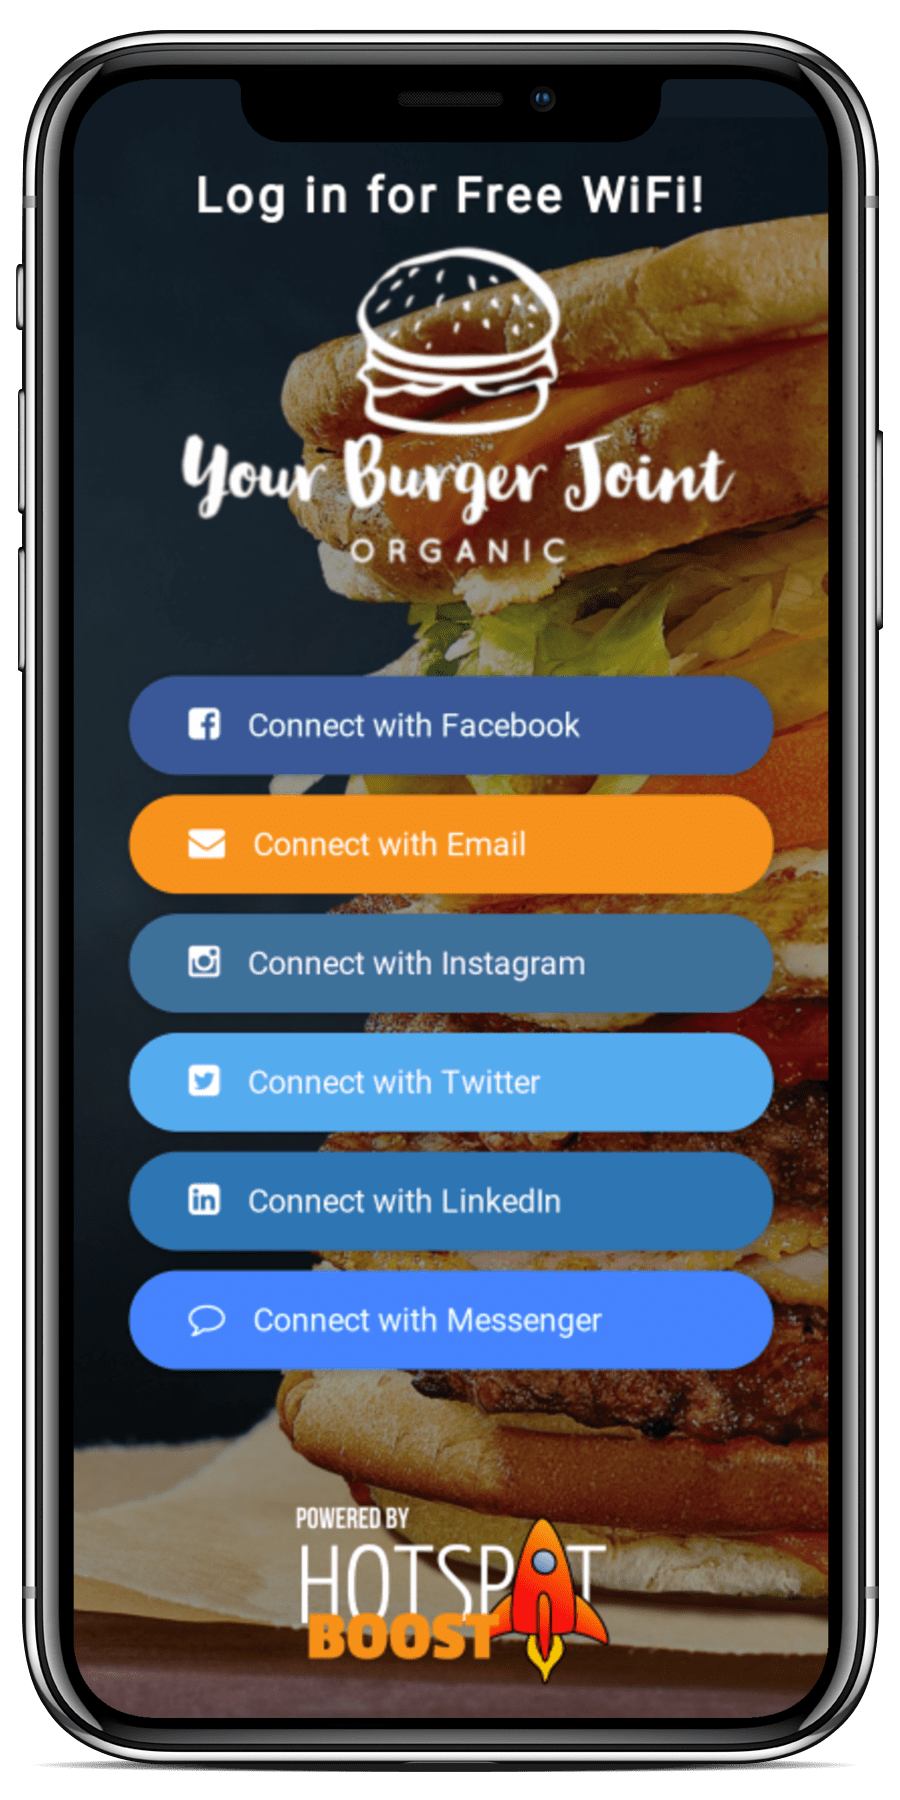 your burger joint phone login-min.png